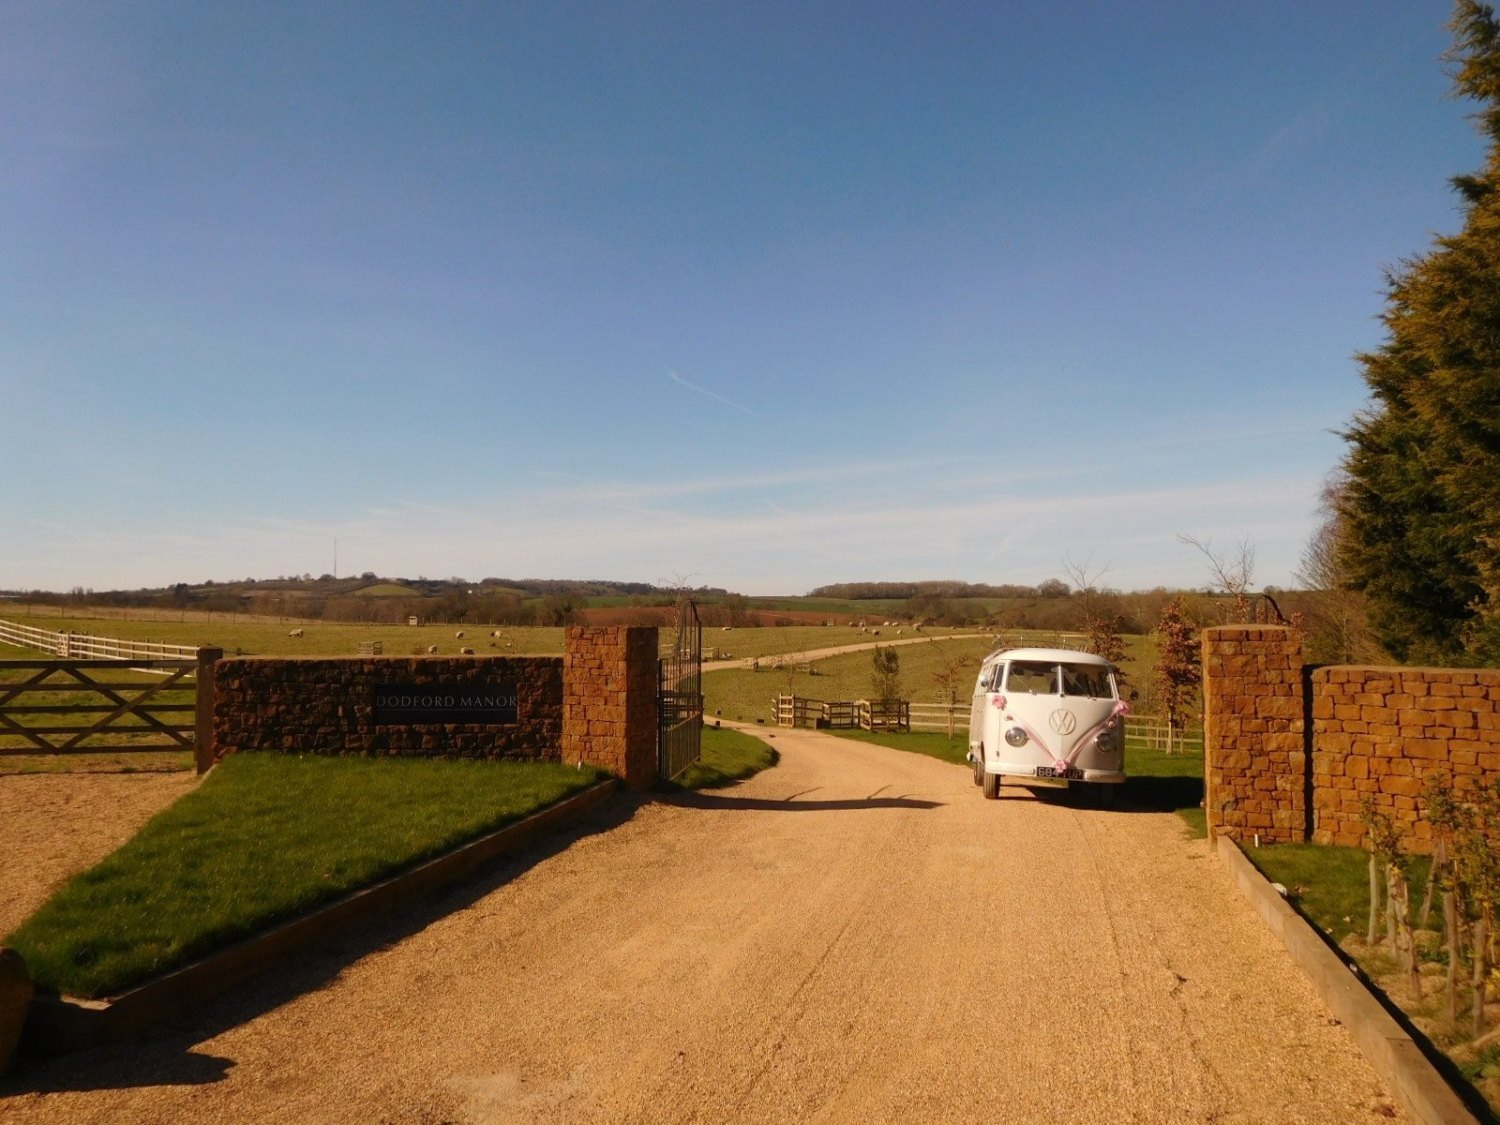 Driveway in the countryside